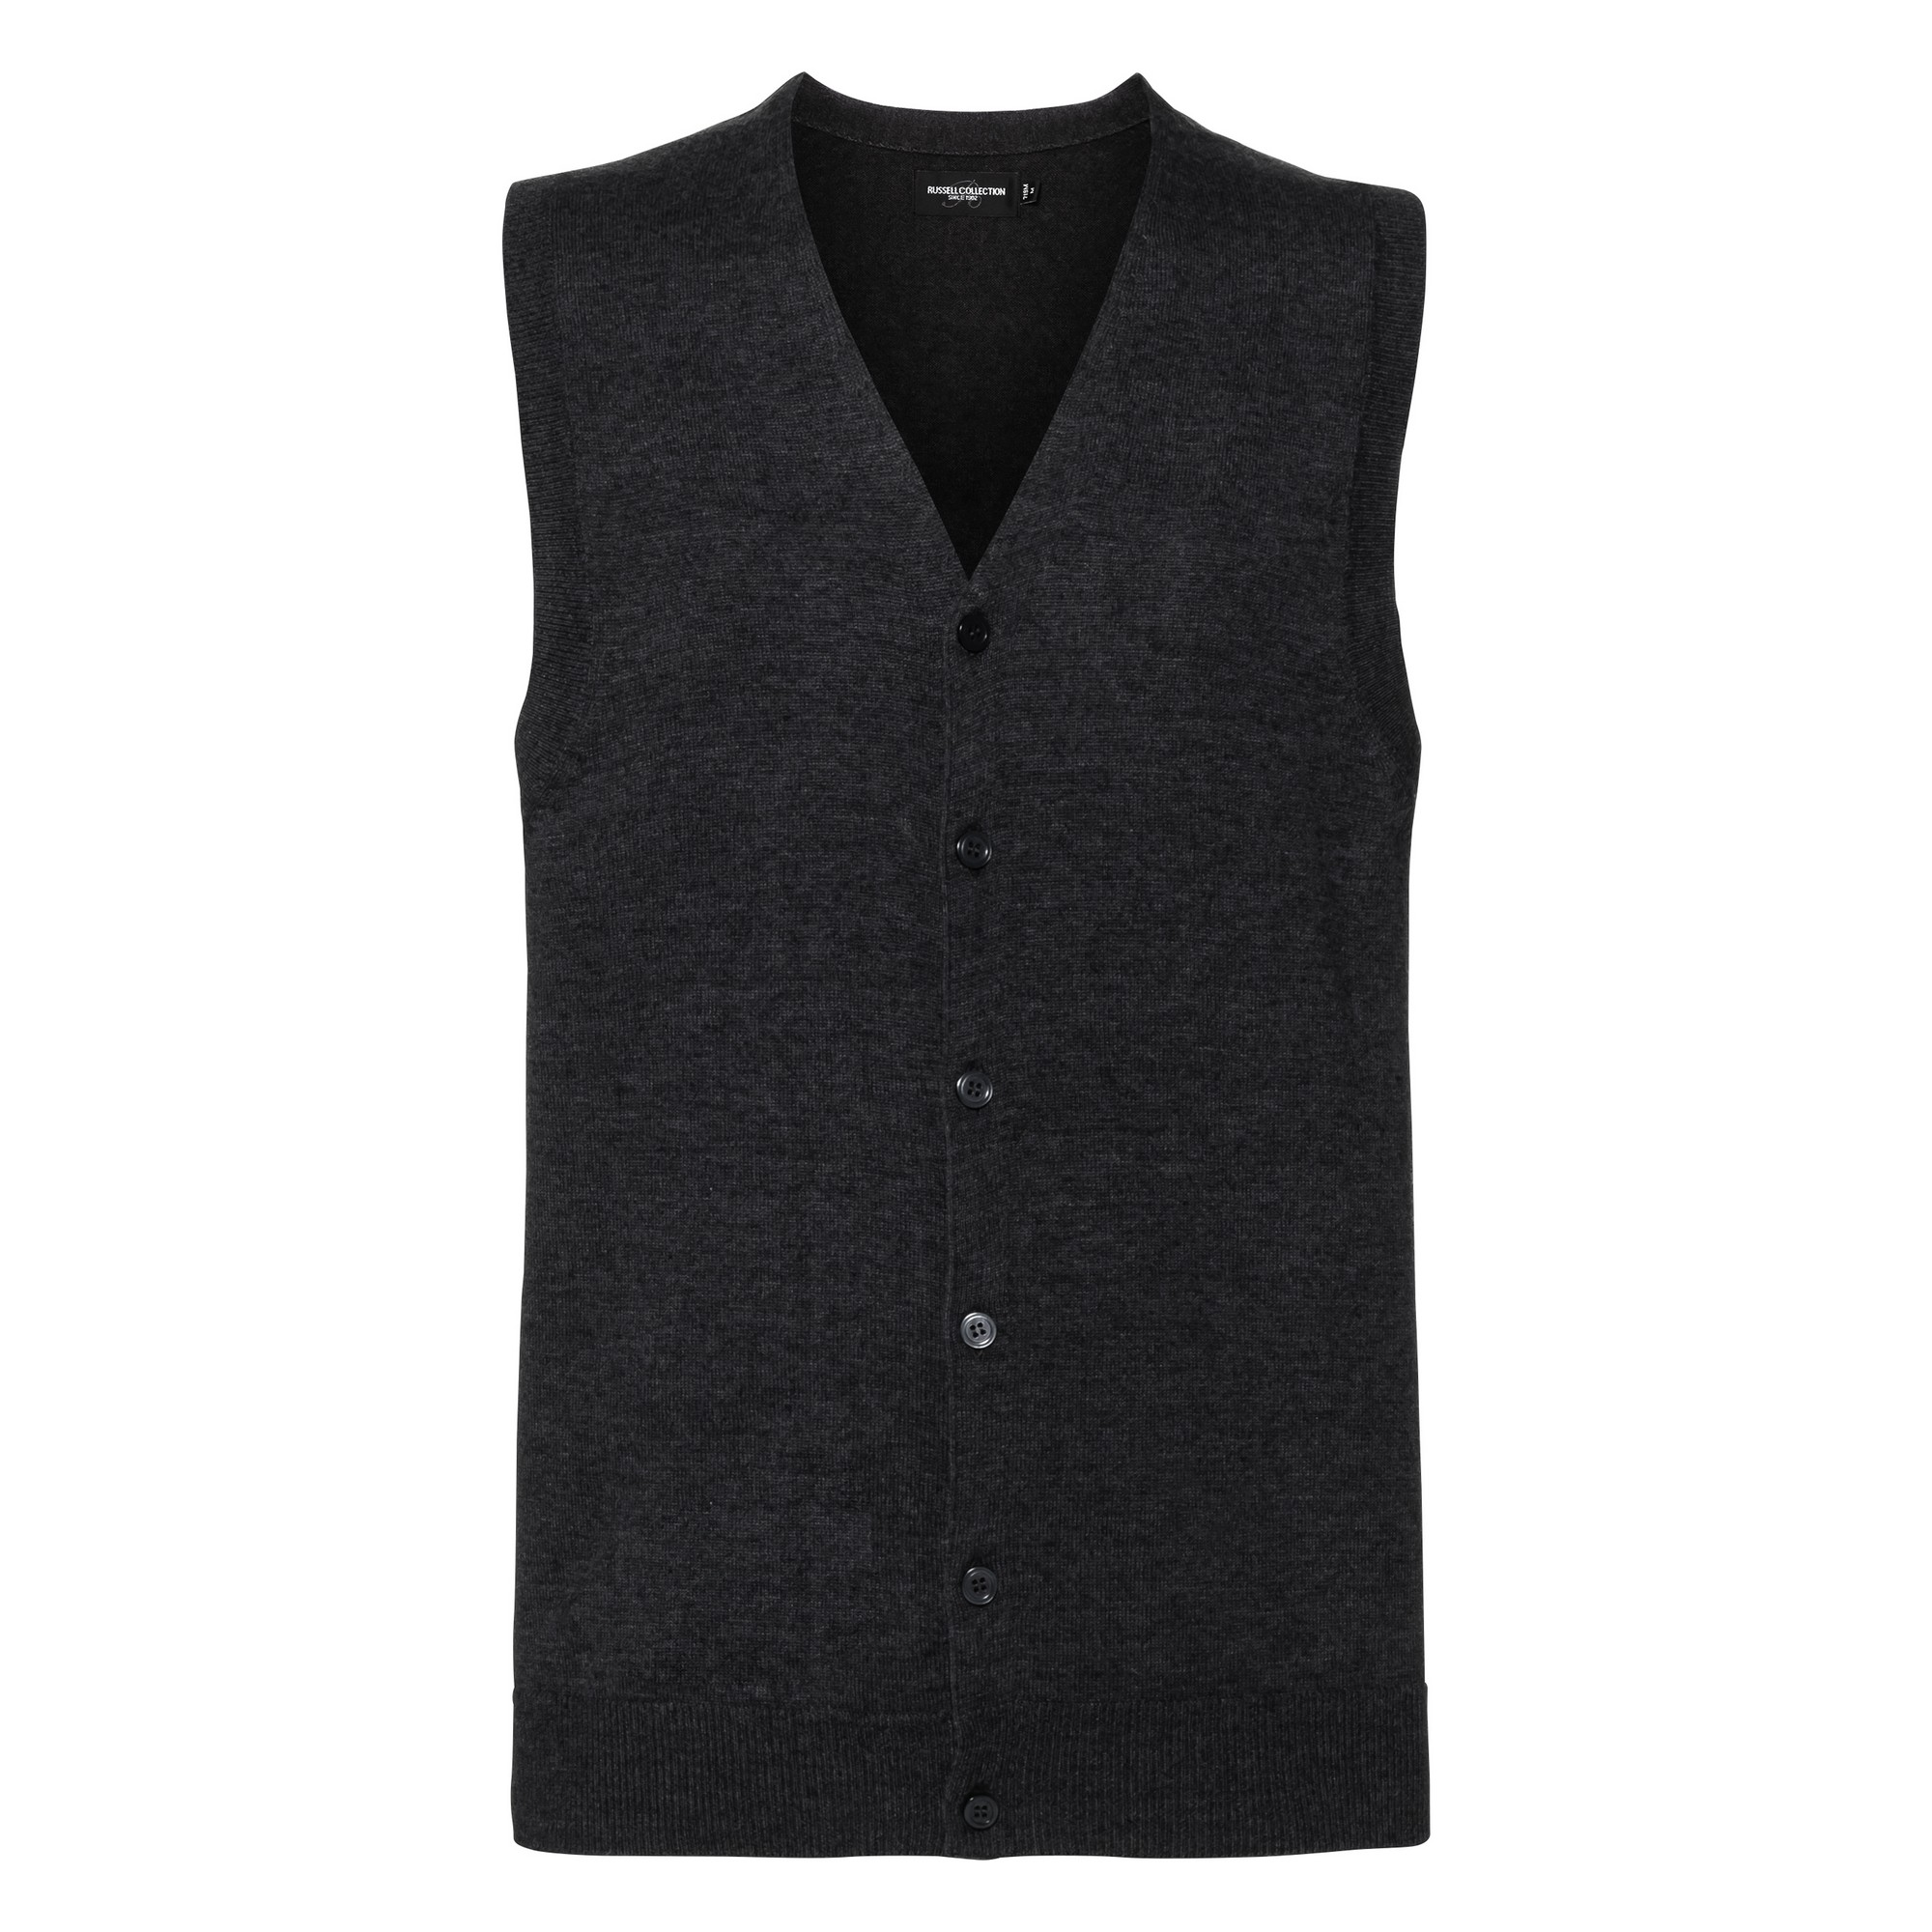 Russell Collection Mens V-neck Sleeveless Knitted Cardigan (2XS) (Charcoal Marl)